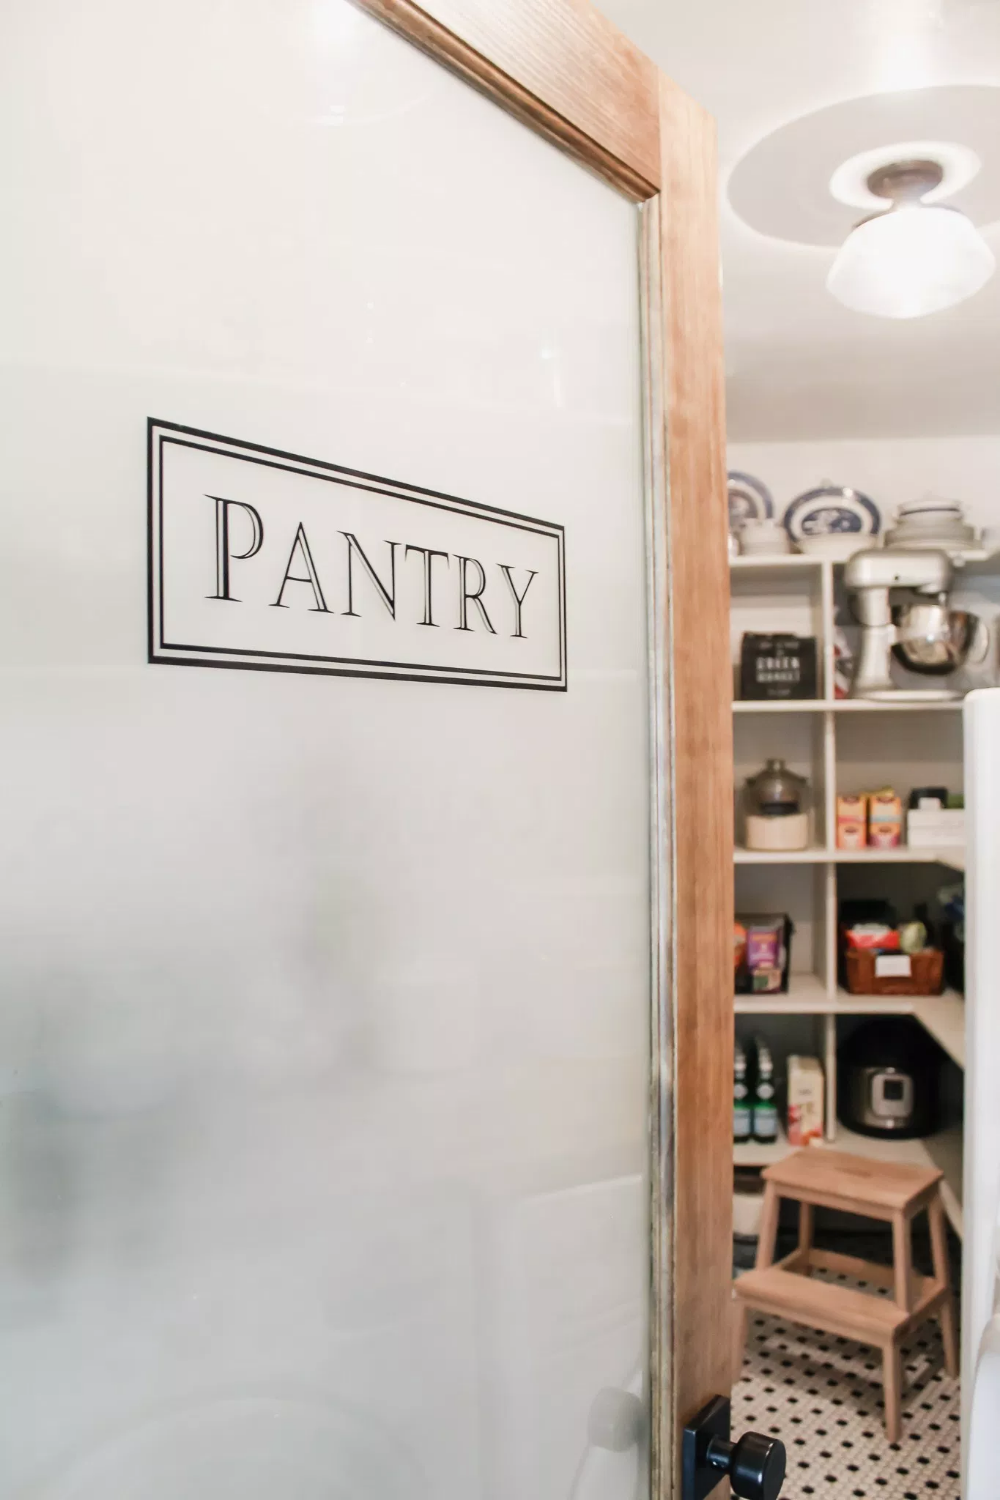 DIY Farmhouse Pantry Door Pantry, Frosted glass sticker